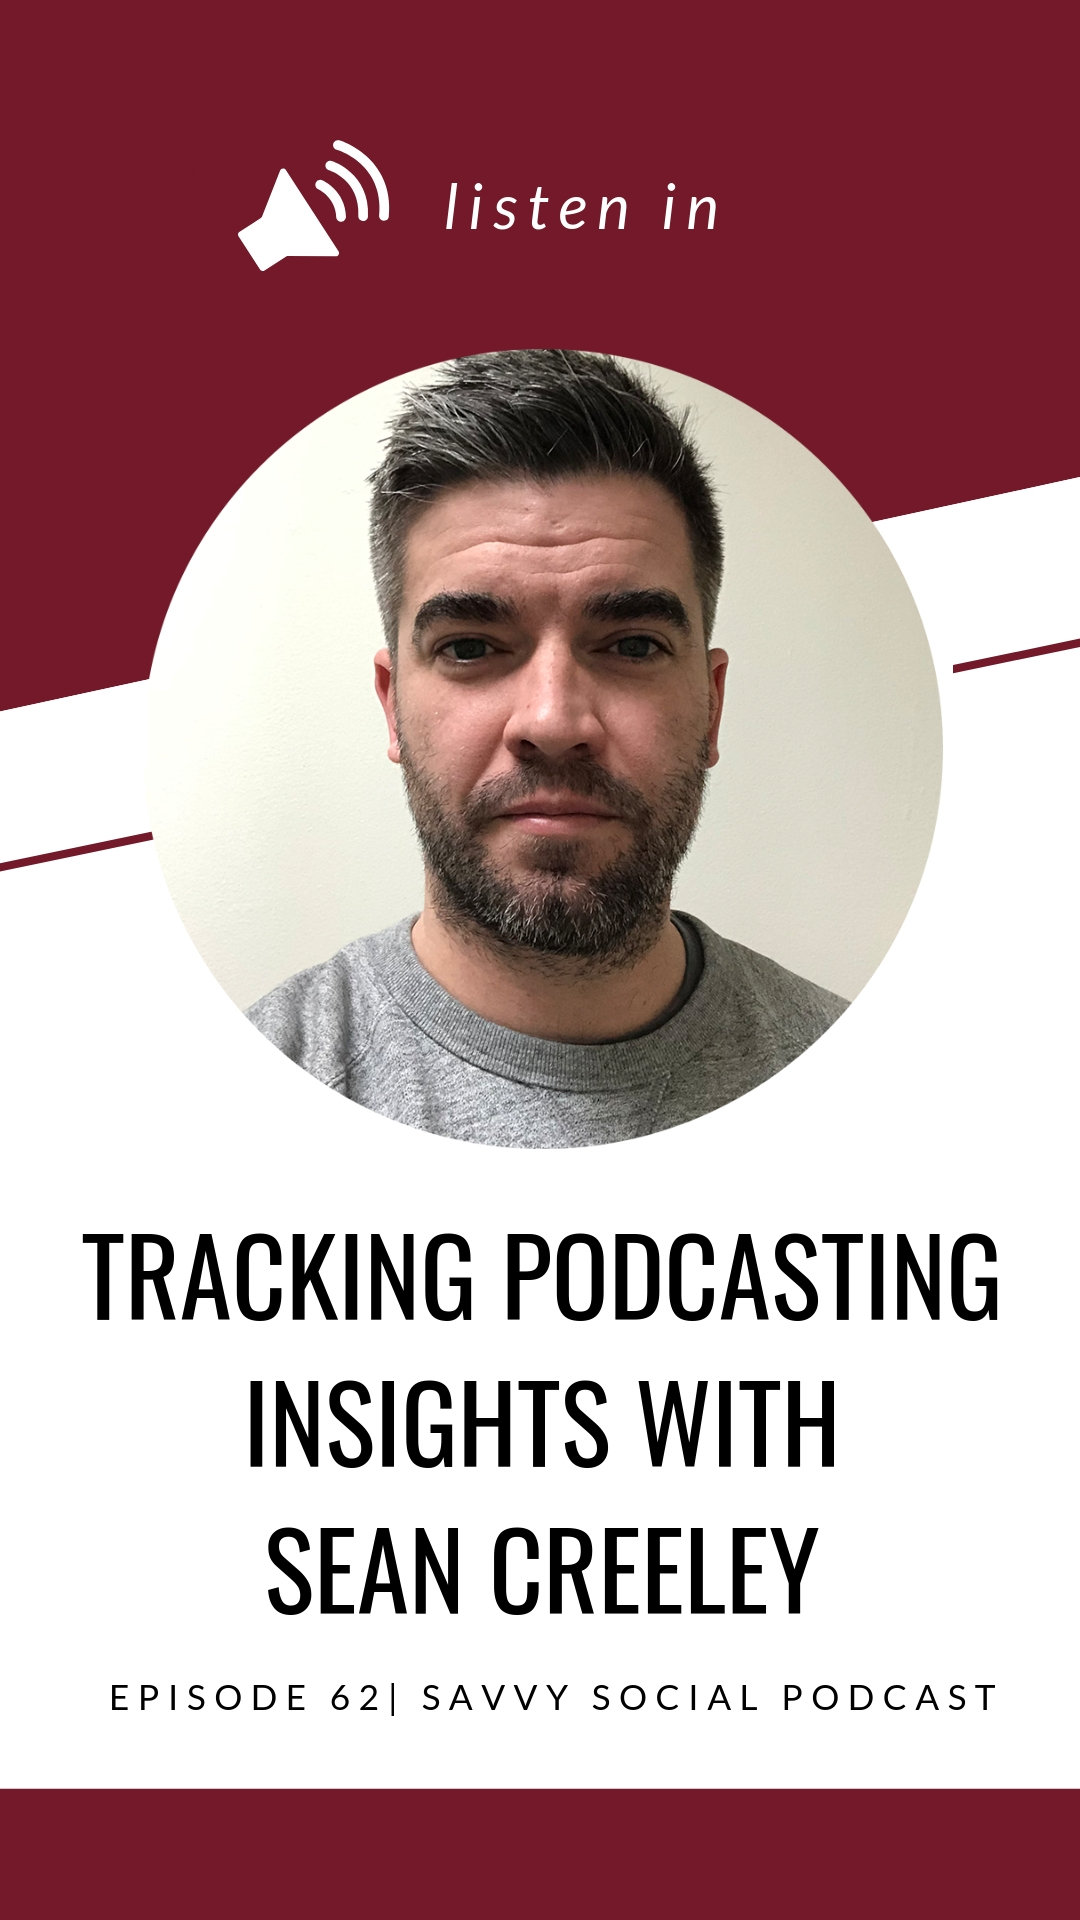 Tracking Podcasting Insights with Sean Creeley